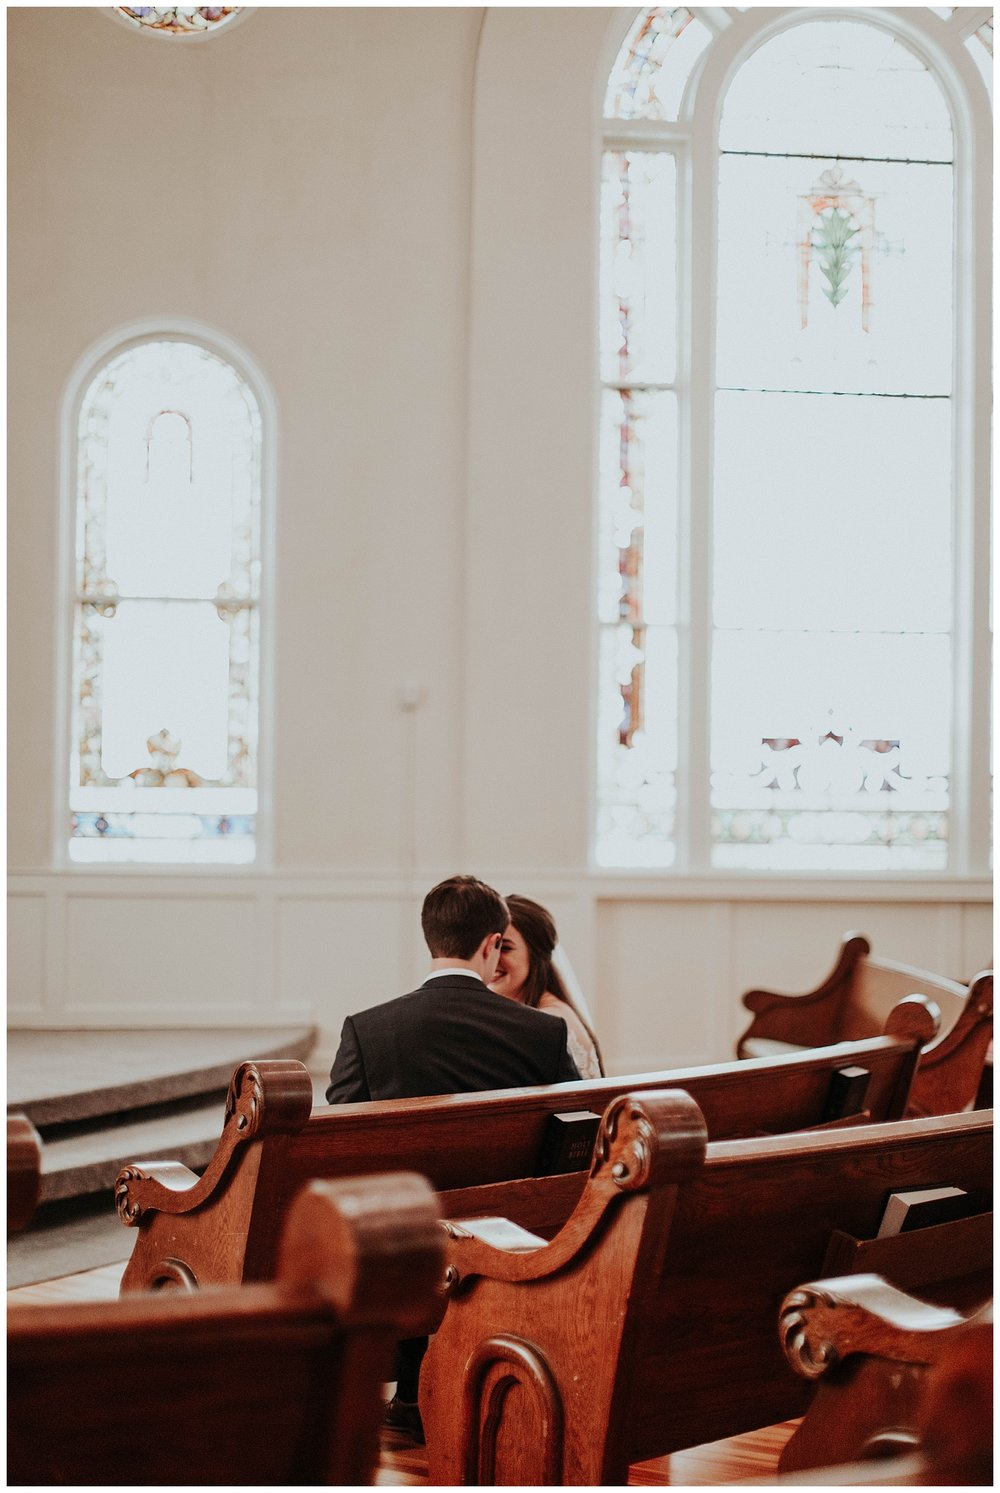 Madalynn Young Photography | Sarah Catherine + Will | Bridge Street Gallery and Loft | Atlanta Wedding Photographer_0242.jpg